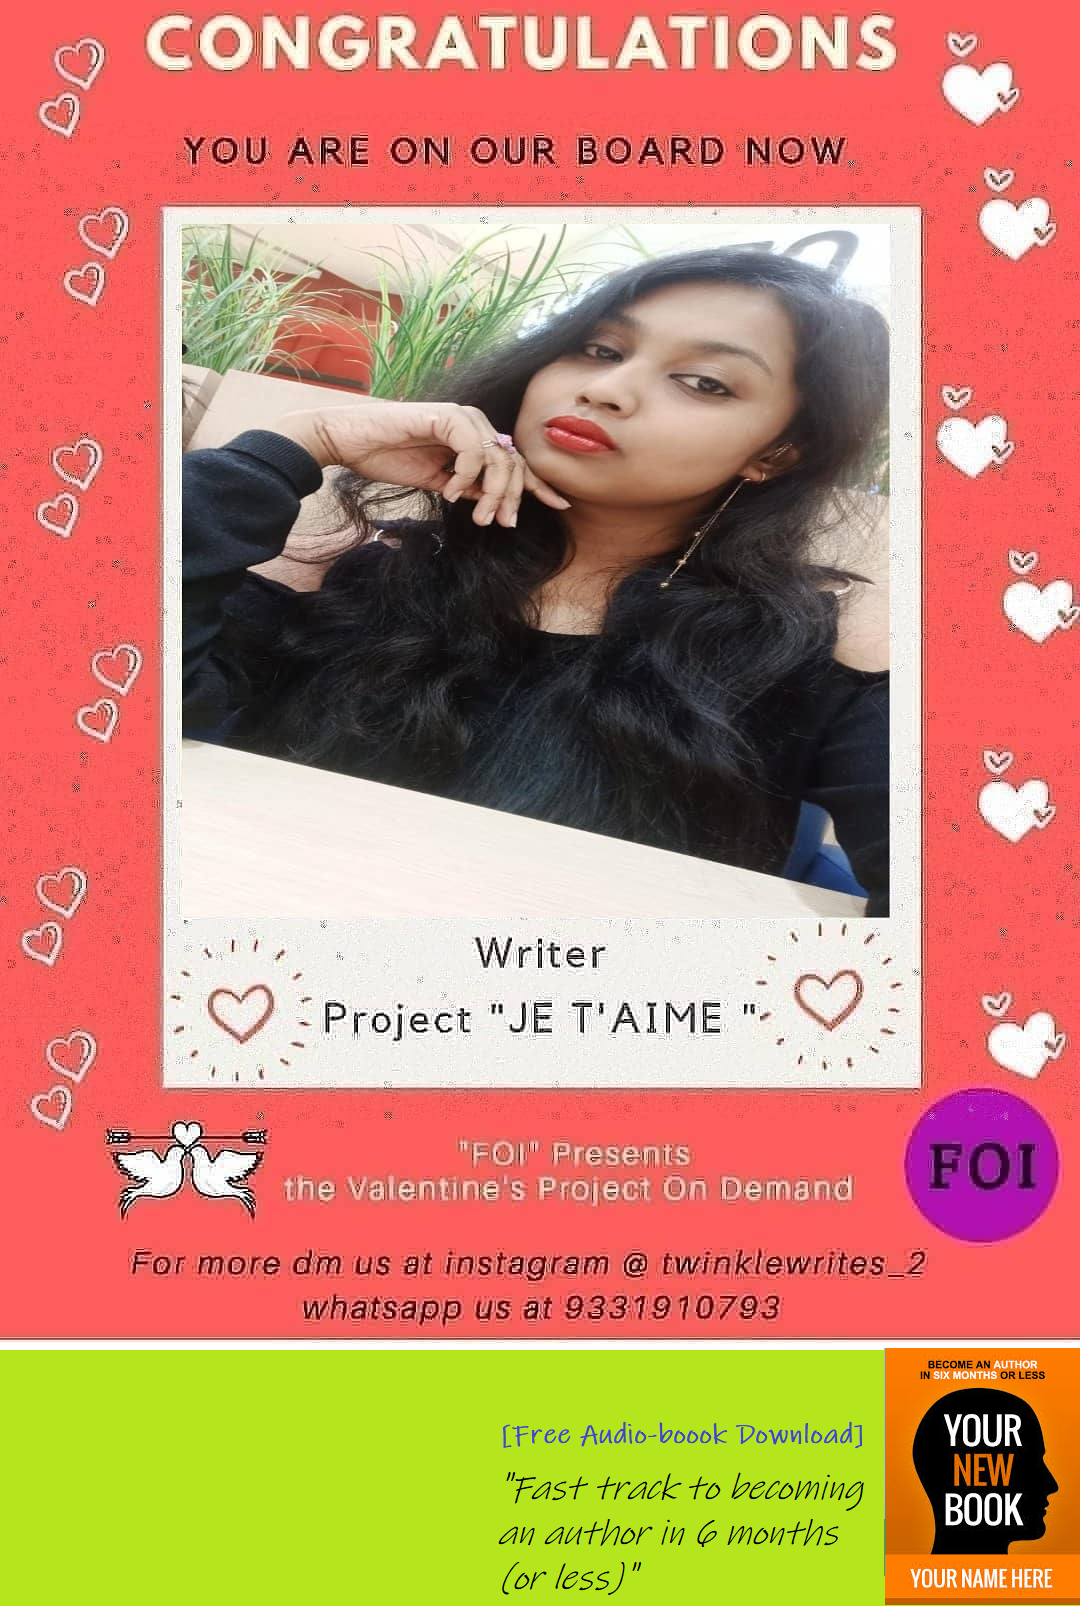 FOI welcomes our talented writer on board, Alina Mohanty, of our